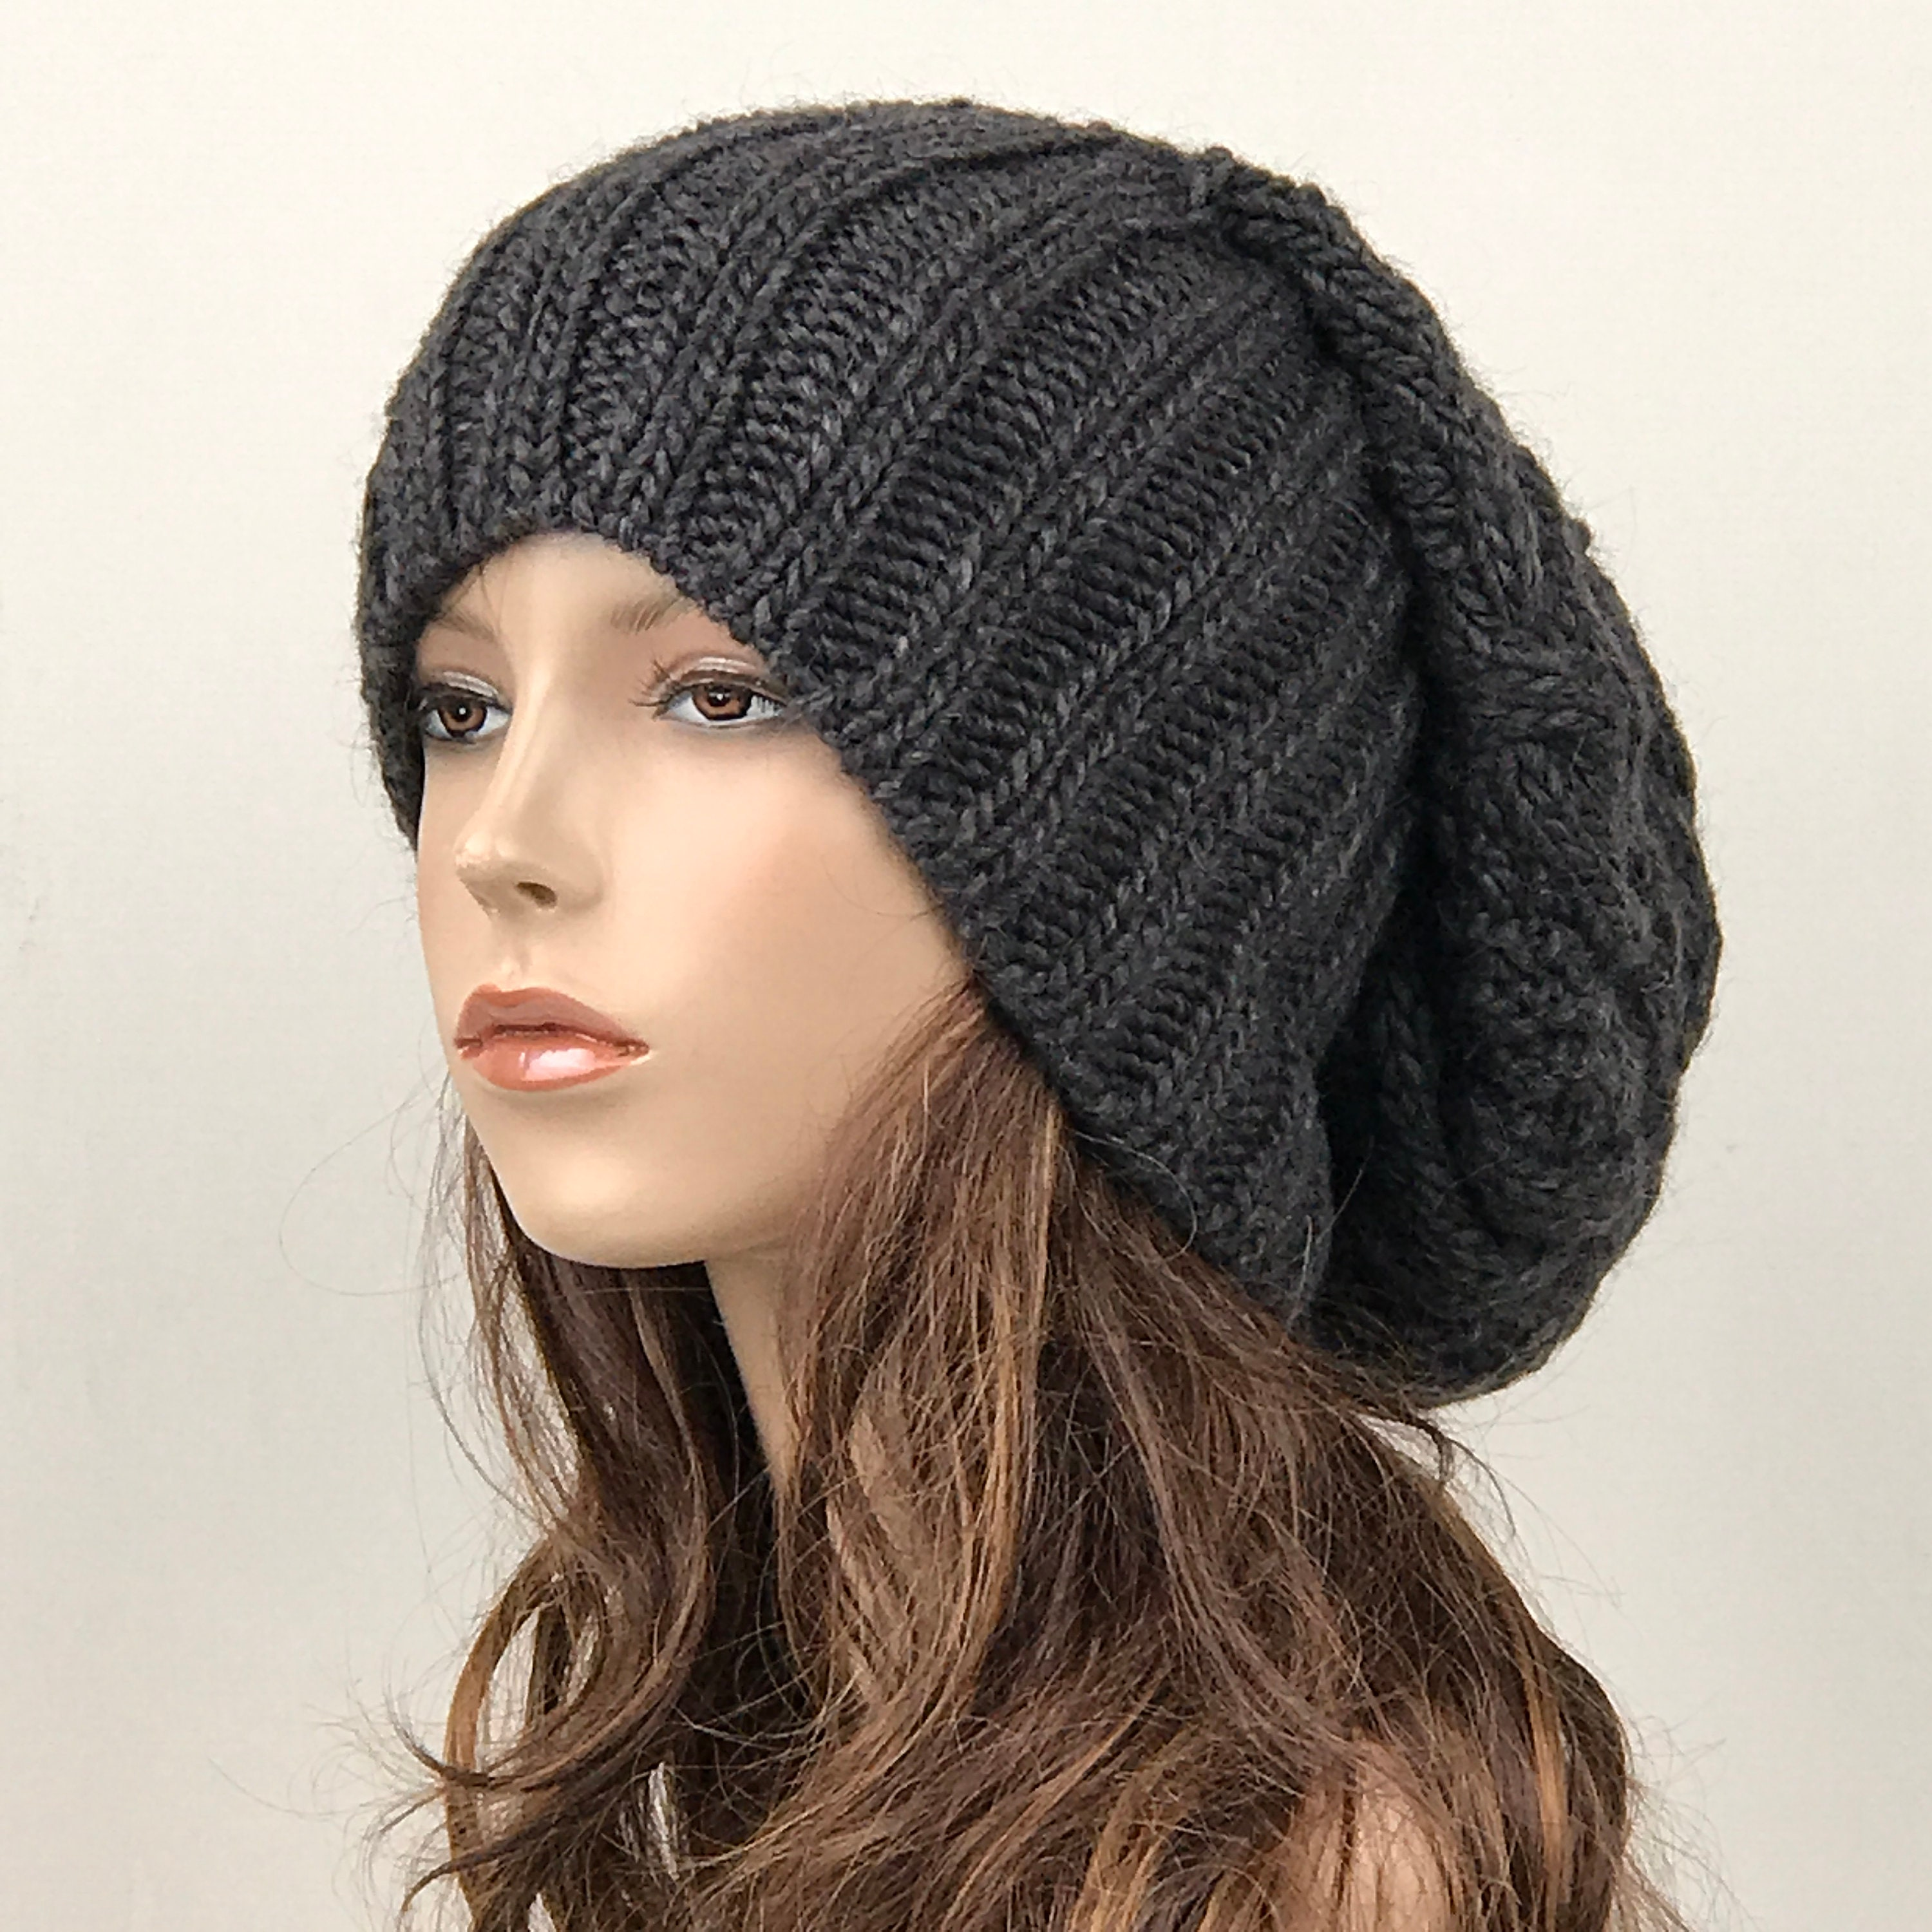 d19c43539bc Hand knit woman man unisex hat - Oversized Chunky Wool Hat ...